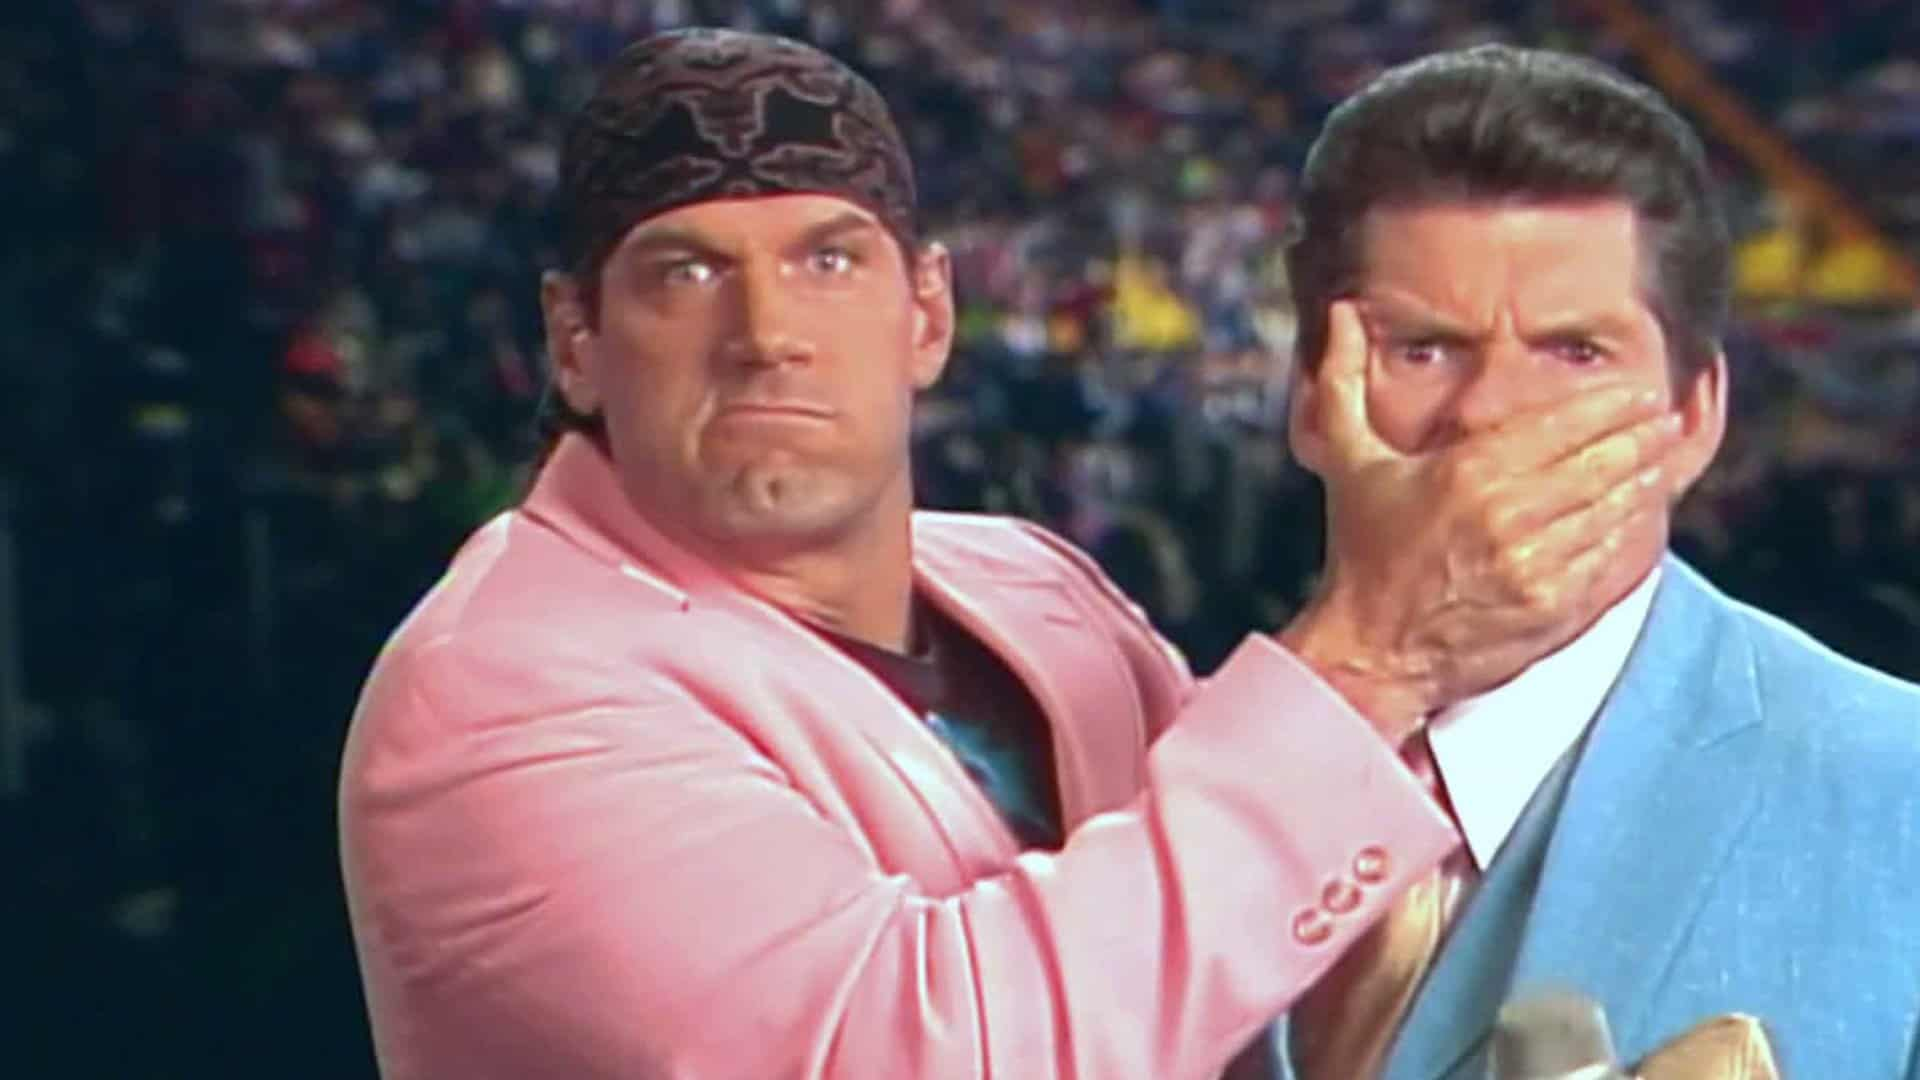 Jesse Ventura puts his hand over Vince McMahon's mouth